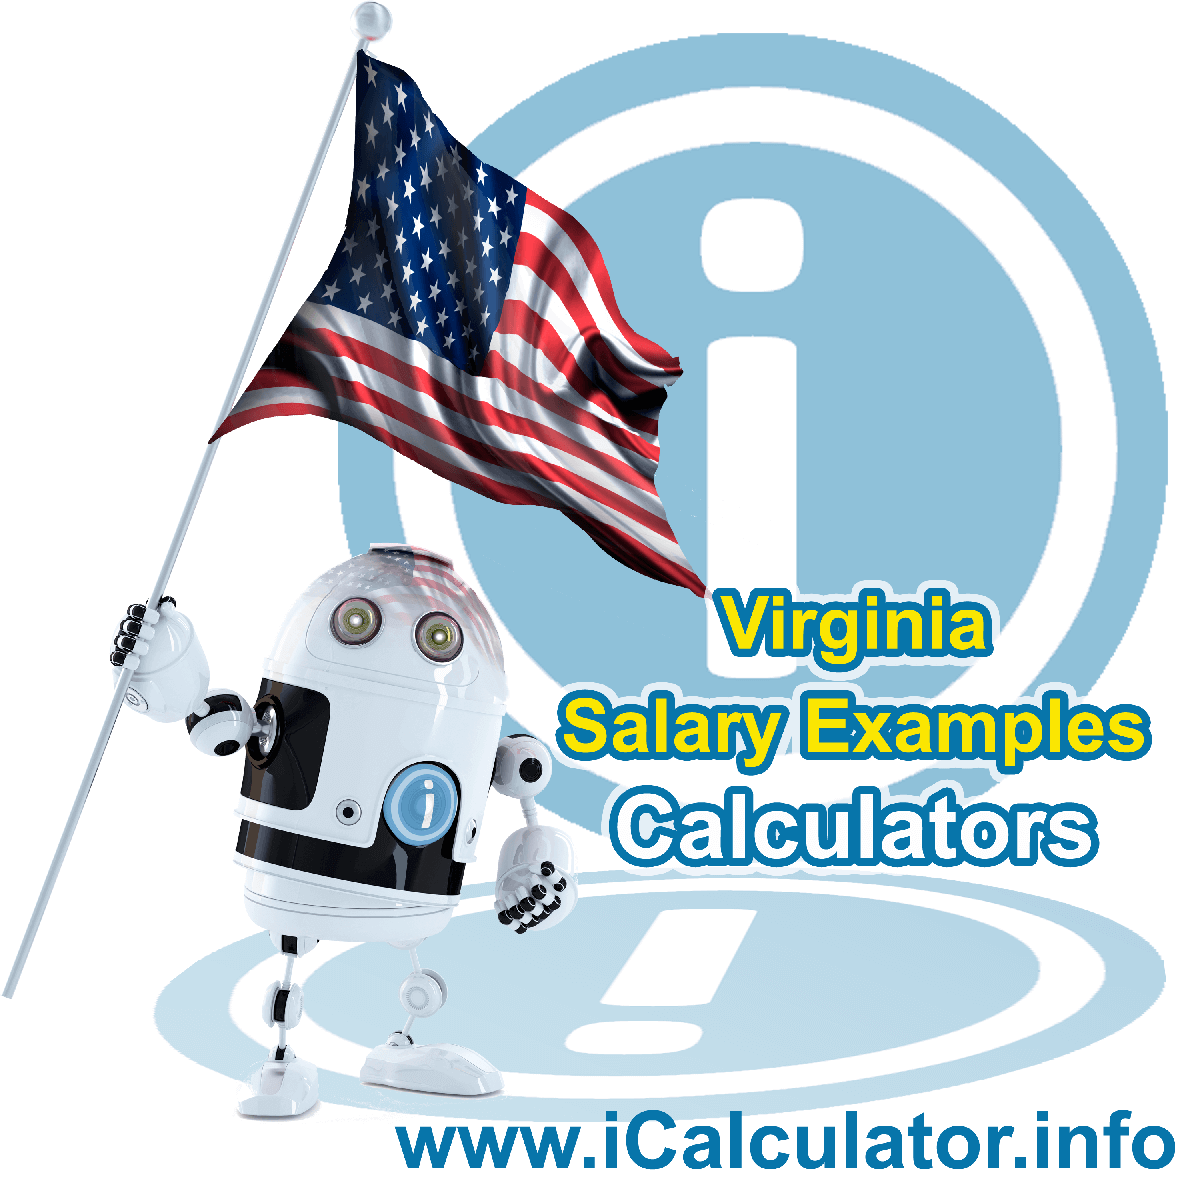 Virginia Salary Example for $60,000.00 in 2020 | iCalculator | $60,000.00 salary example for employee and employer paying Virginia State tincome taxes. Detailed salary after tax calculation including Virginia State Tax, Federal State Tax, Medicare Deductions, Social Security, Capital Gains and other income tax and salary deductions complete with supporting Virginia state tax tables